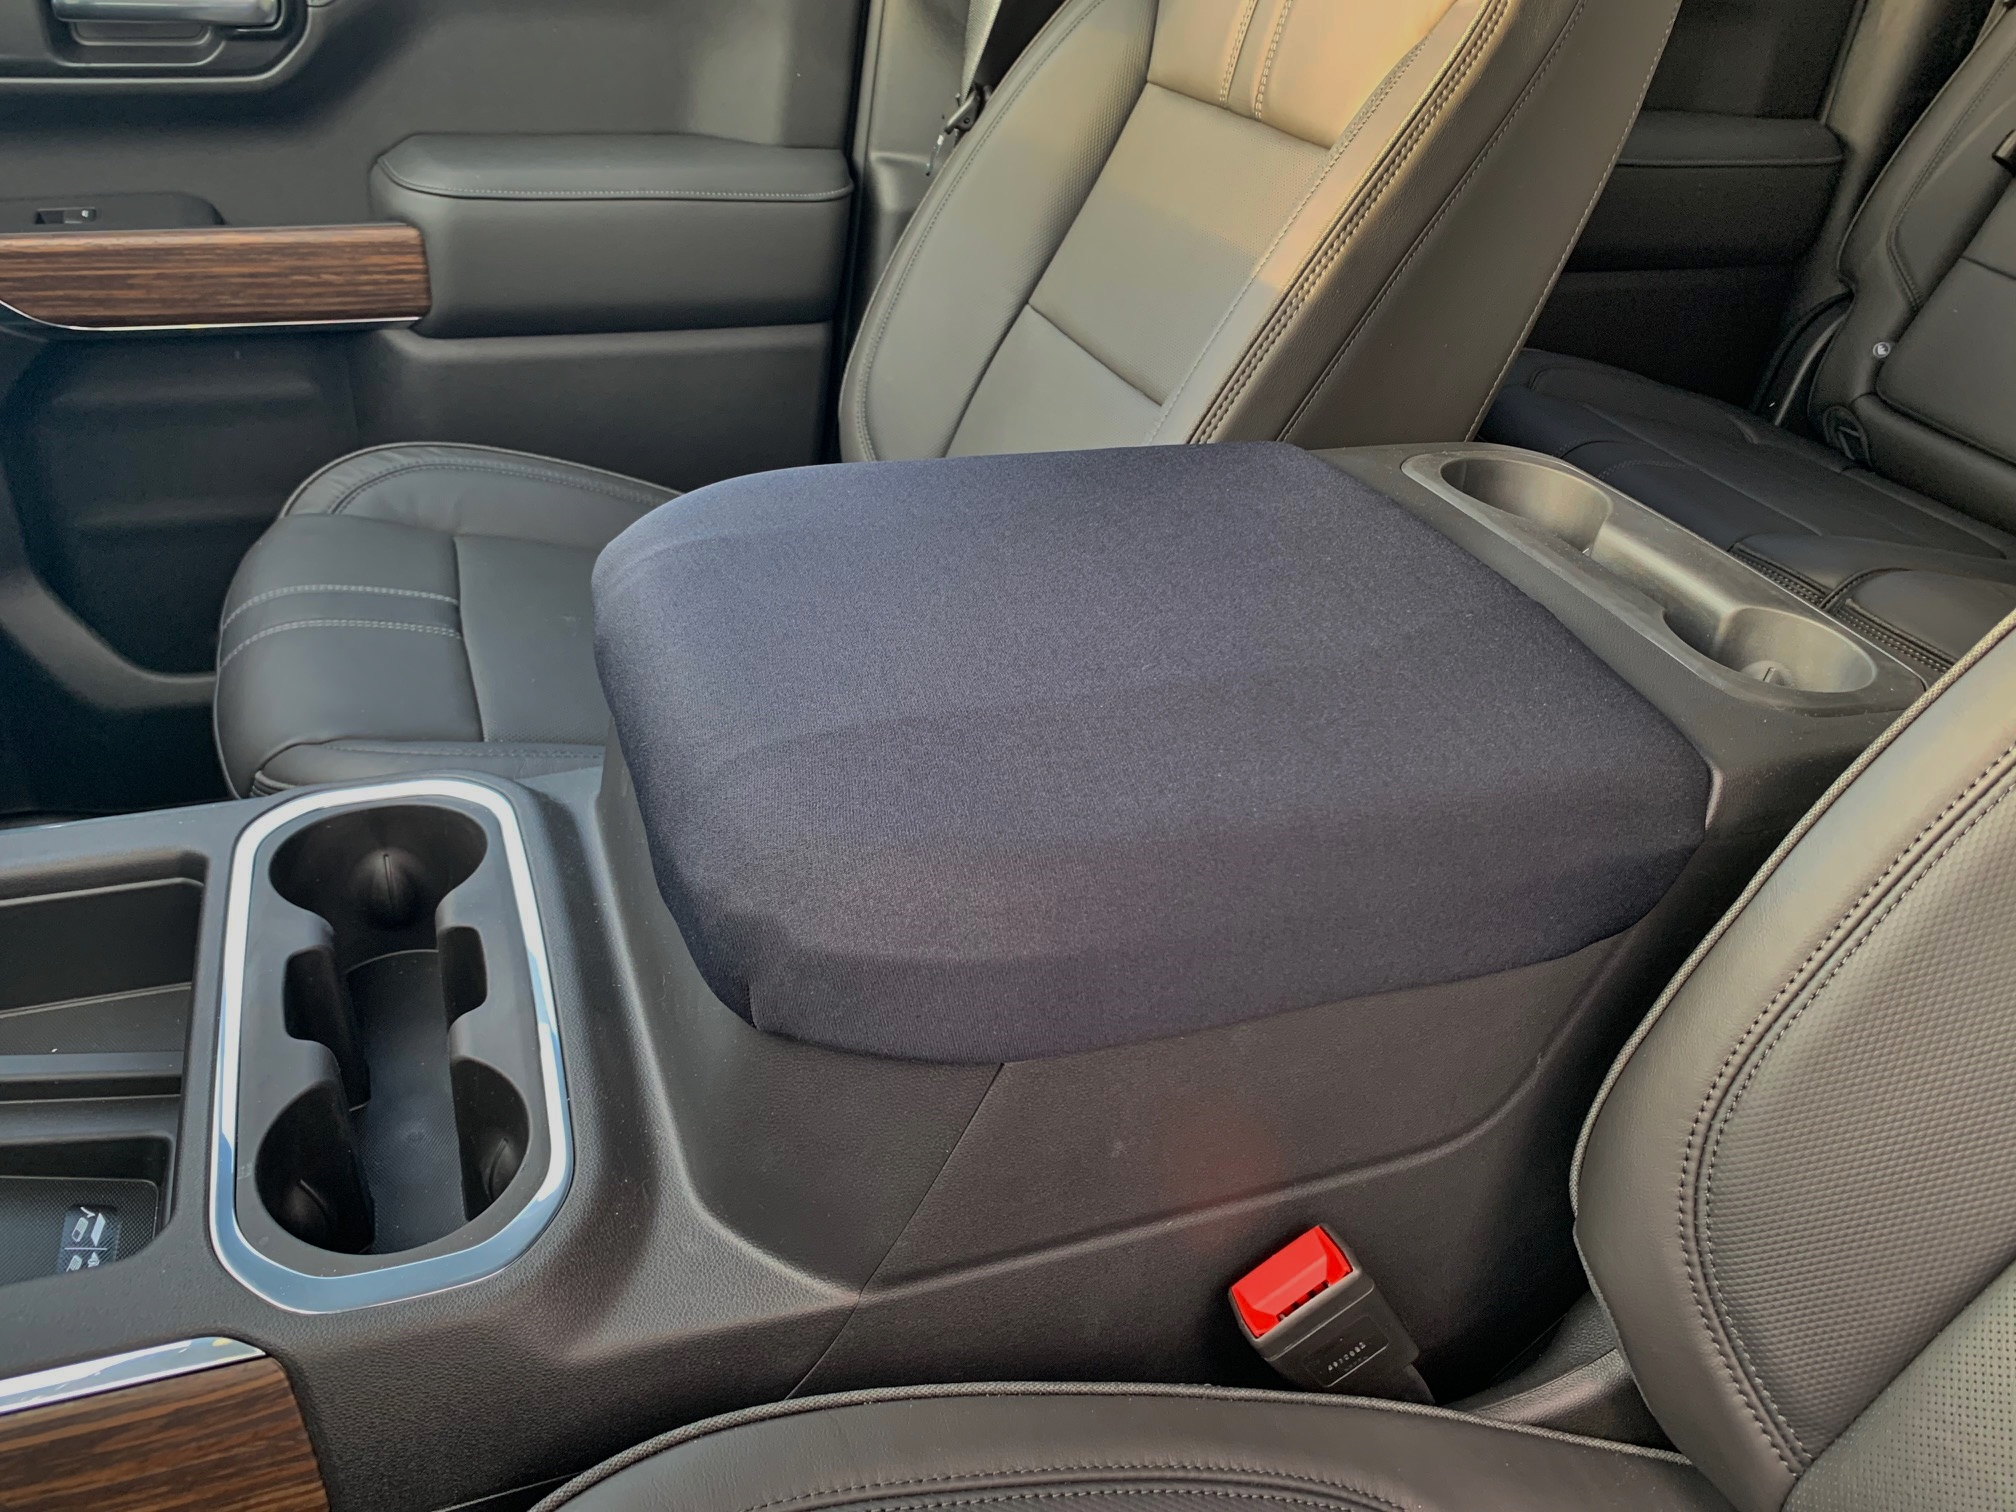 Buy Neoprene Center Console Armrest Cover Fits the Chevy Tahoe 2019-2021 Custom fit cover for the center console armrest